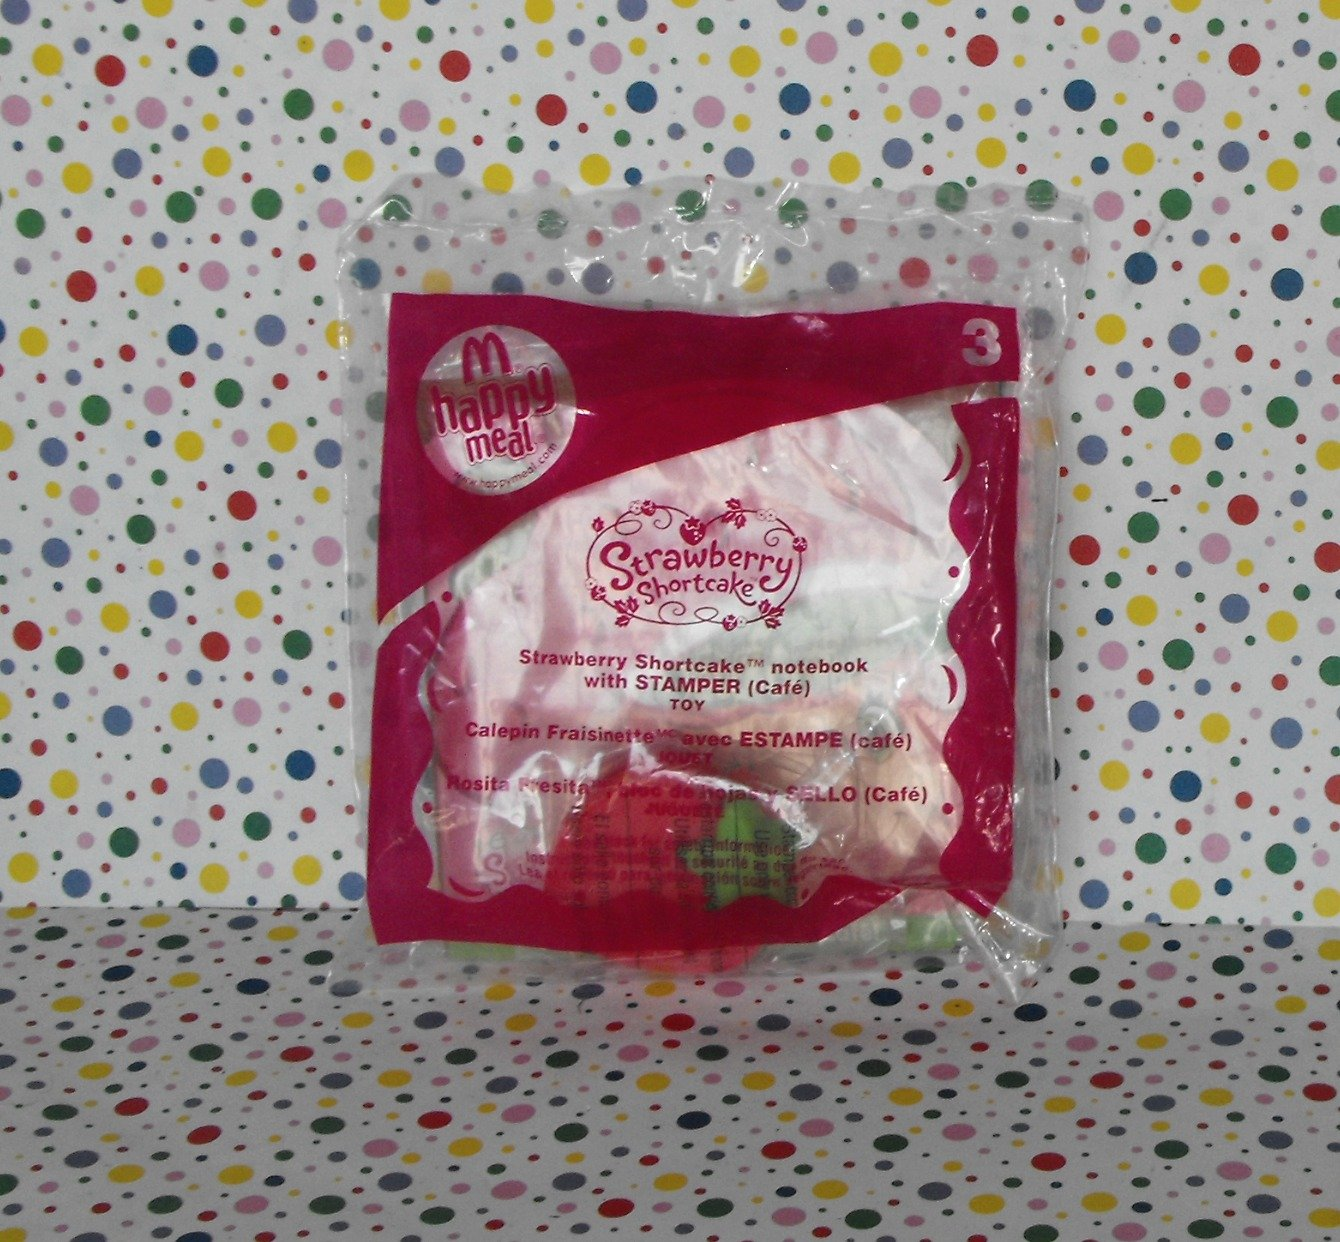 McDonalds Strawberry Shortcake 2009 Notebook and Stamper Toy